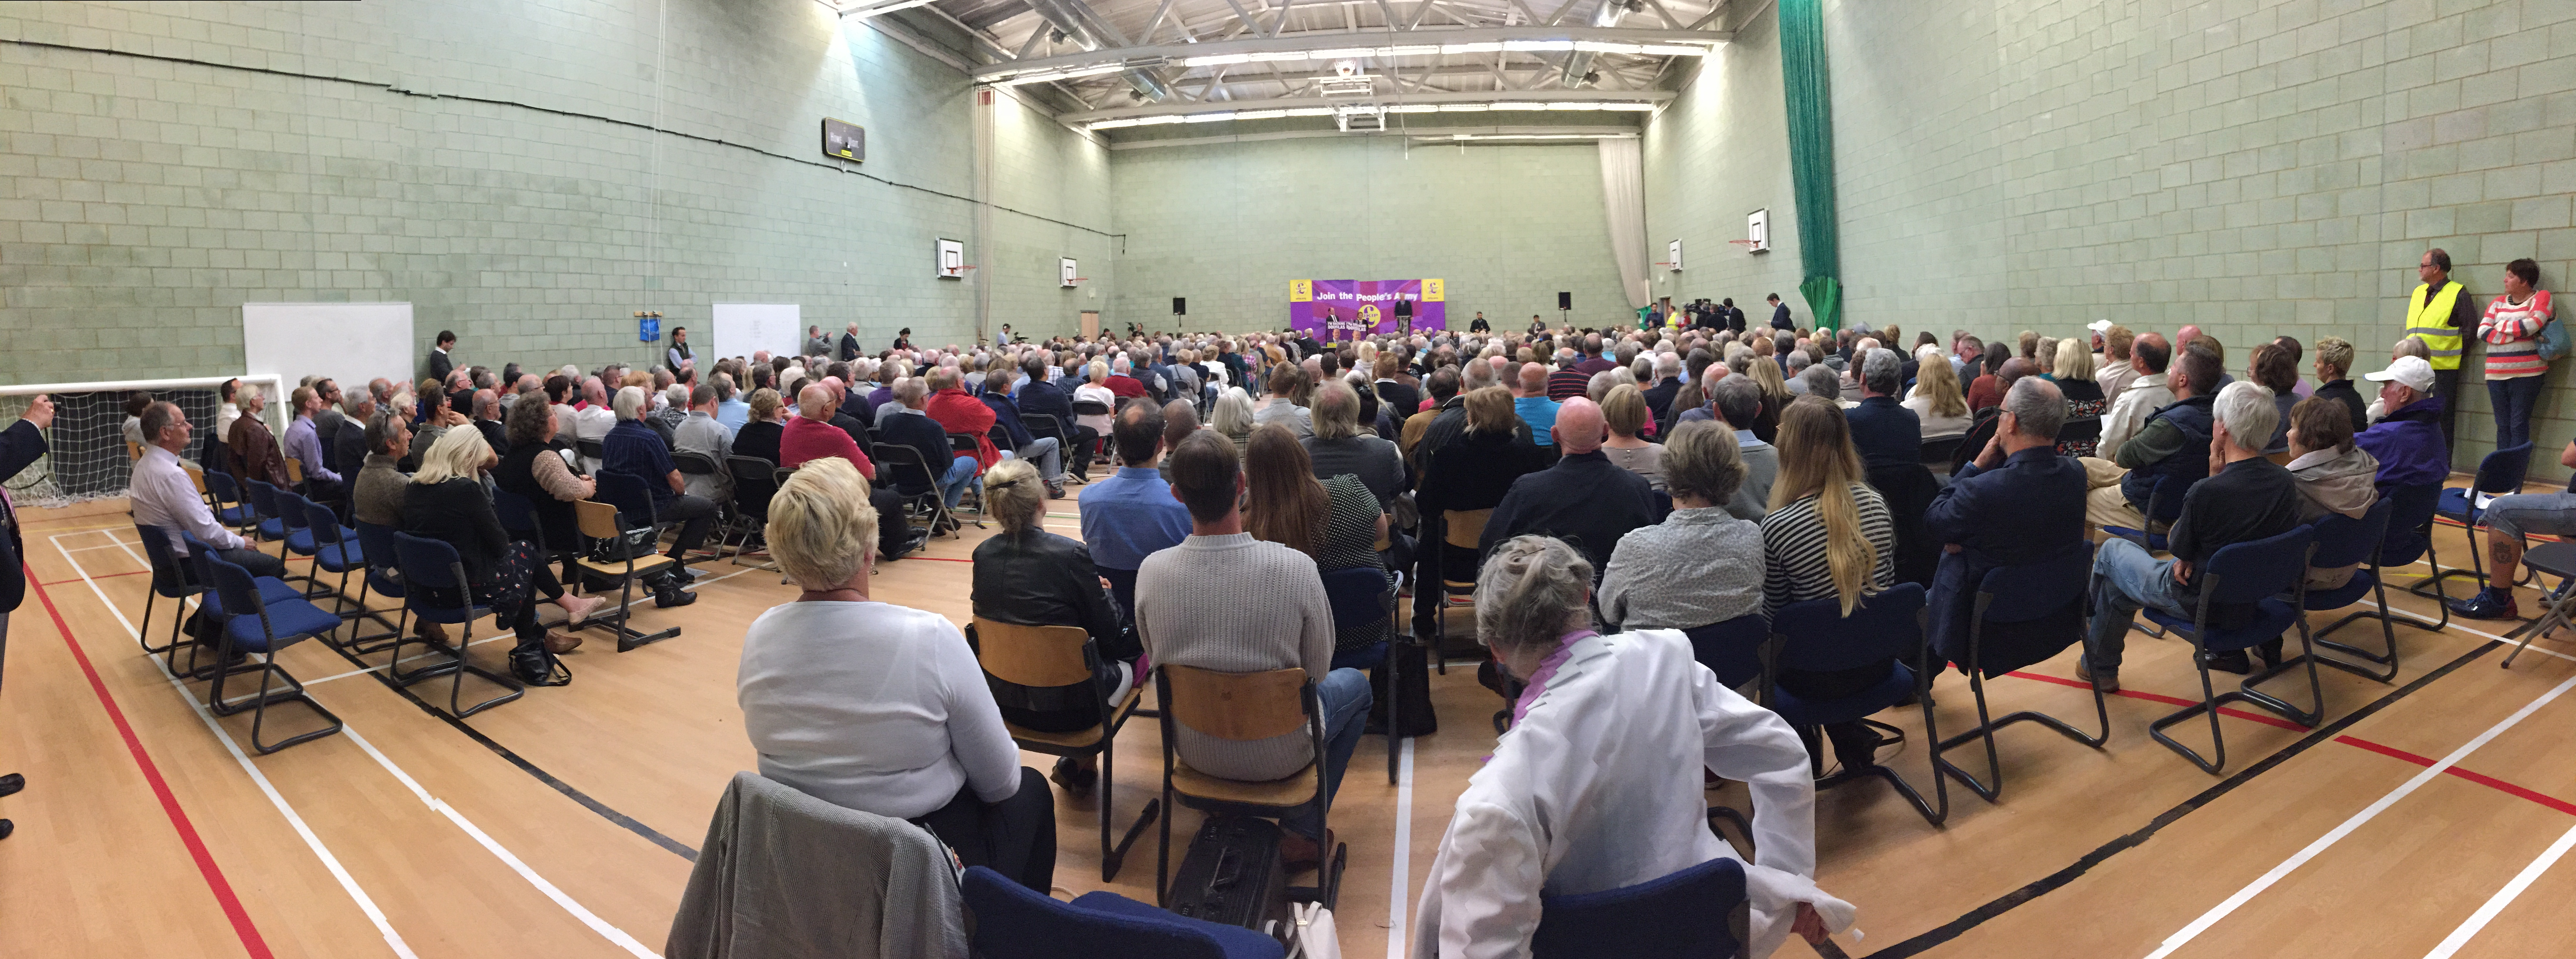 'Come and Join the Clacton Battalion of Our People's Army' Declares Farage at 1000-Strong UKIP Rally